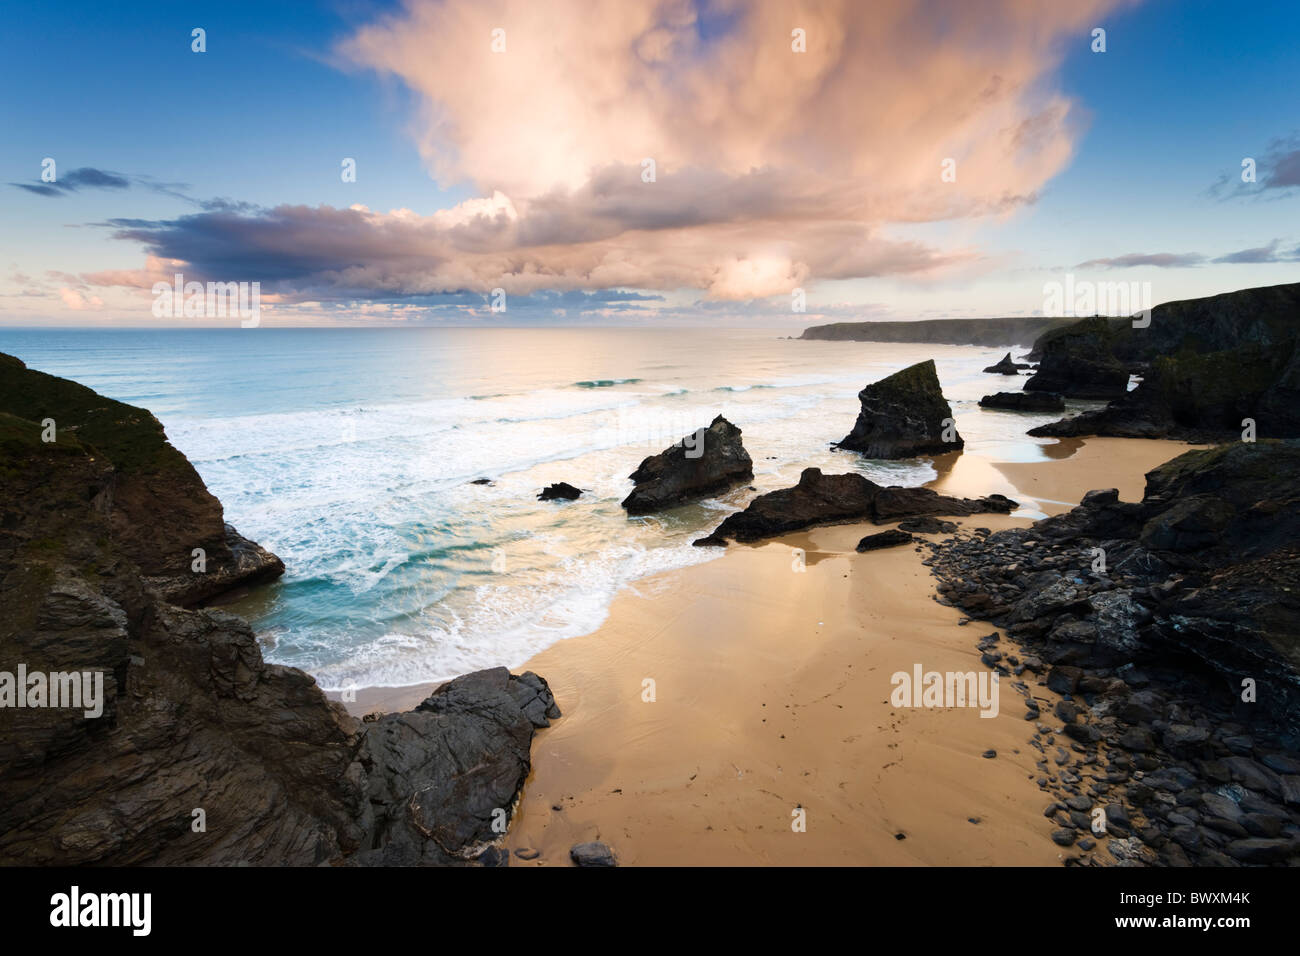 Bedruthan Steps, Cornwall, UK - Stock Image